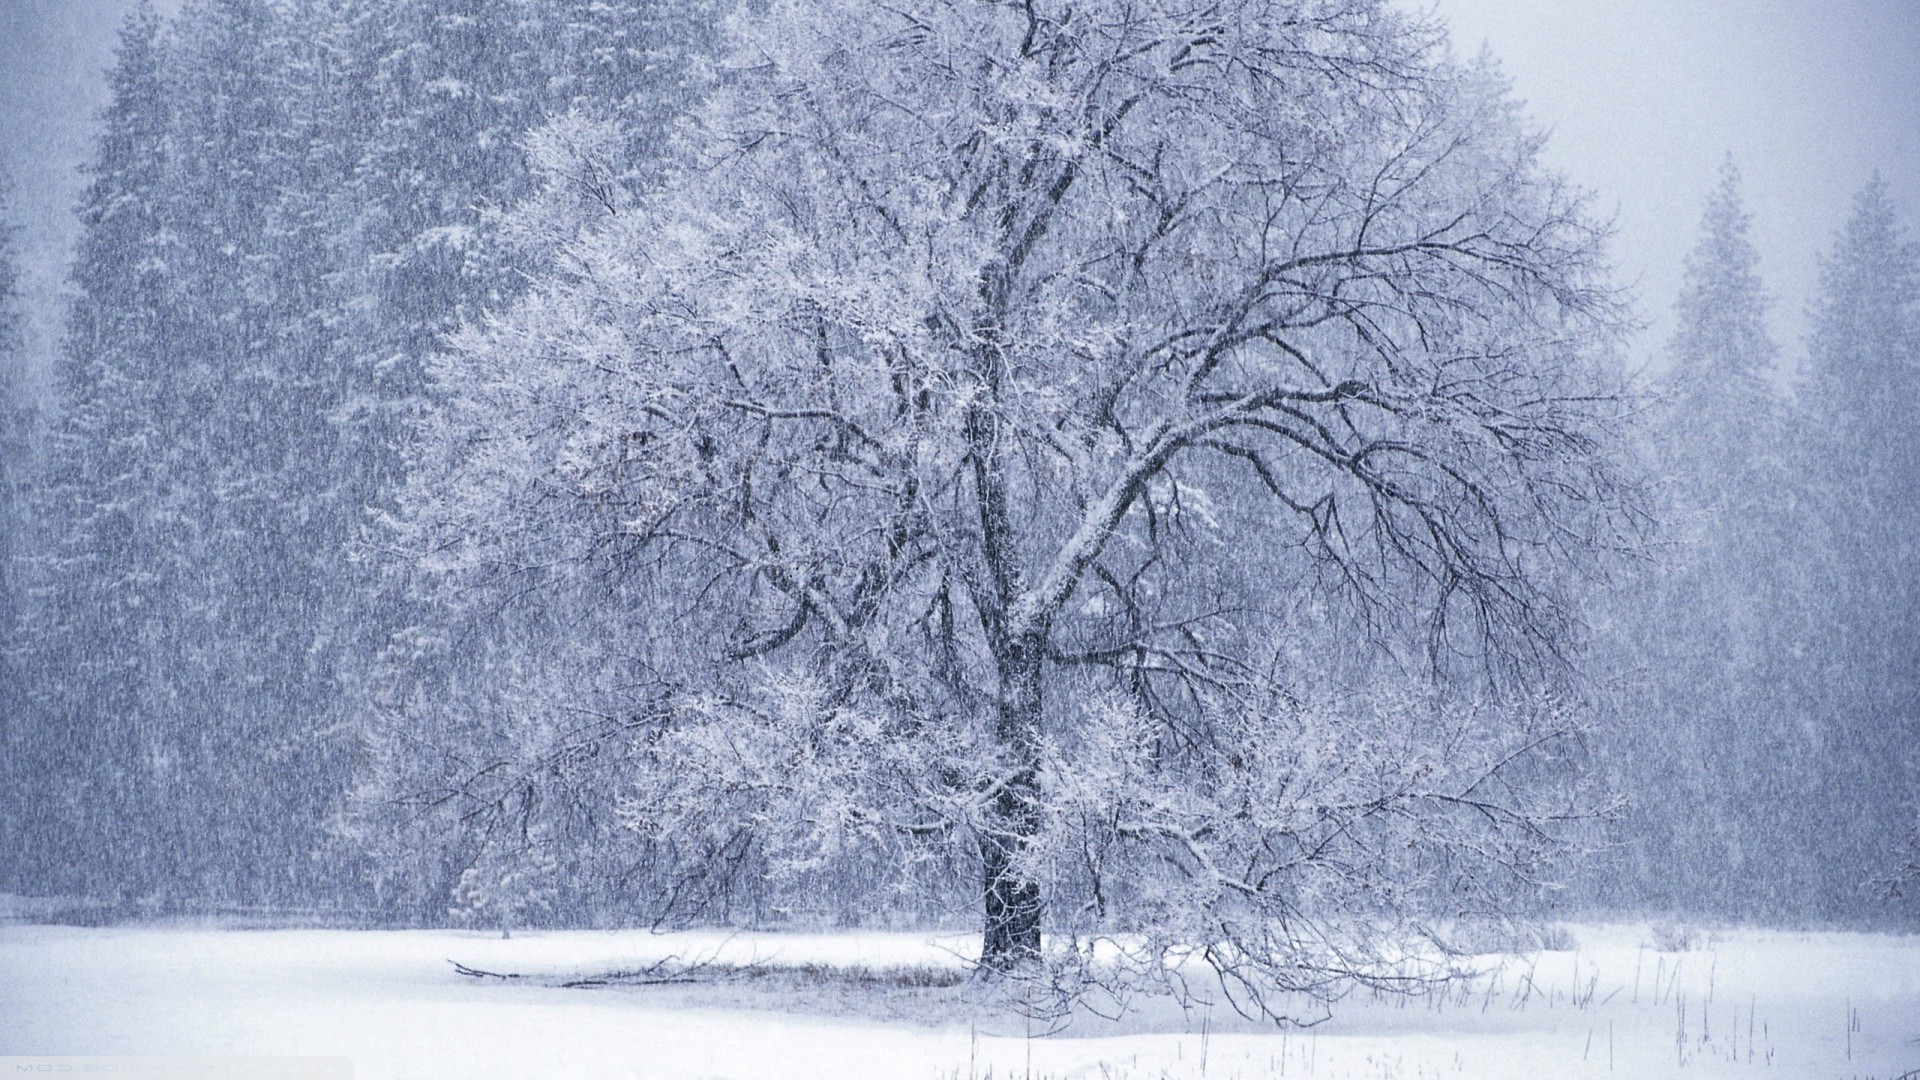 Trees Winter Nature Landscape Snow White Wallpapers